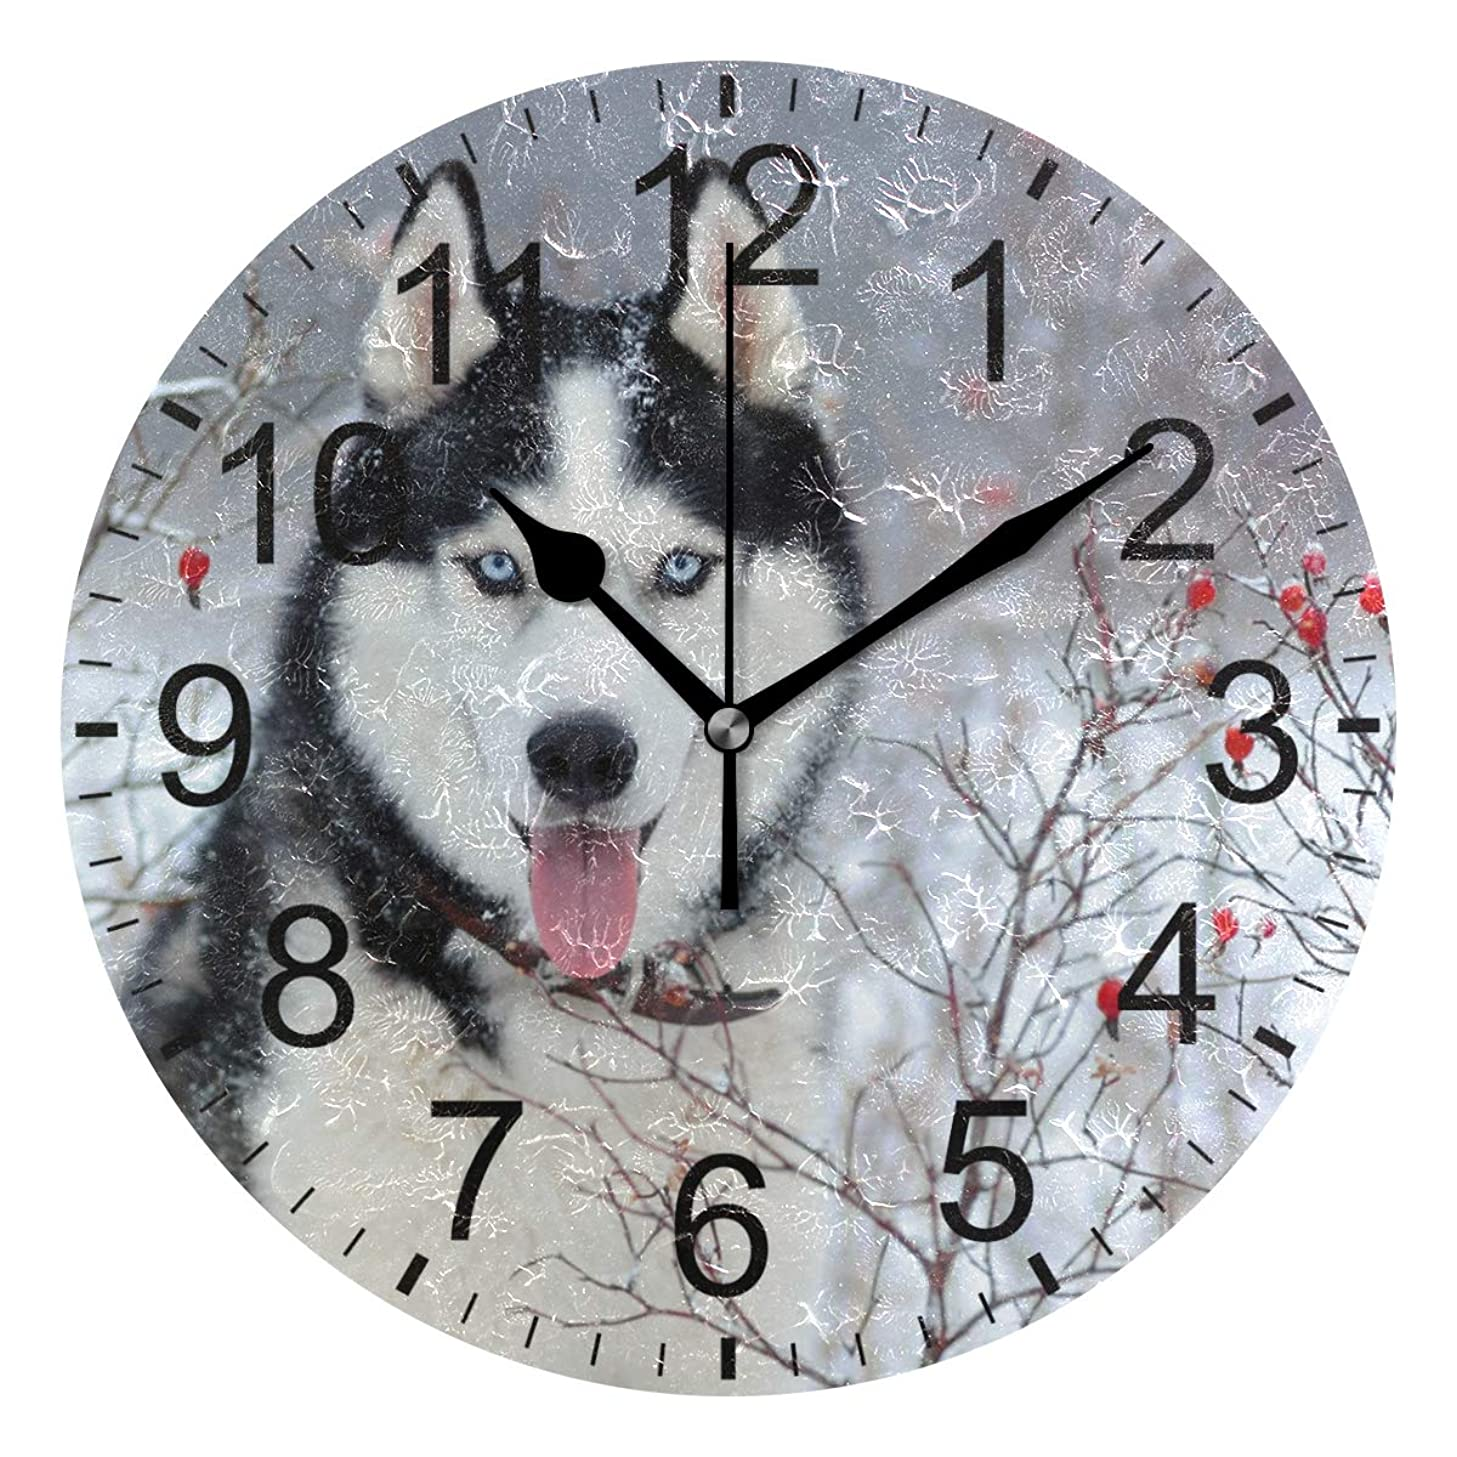 Senwei Animal Husky Dog Wall Clock Decorative Living Room Bedroom Kitchen Battery Operated Round Clock Art for Home Decor Unique